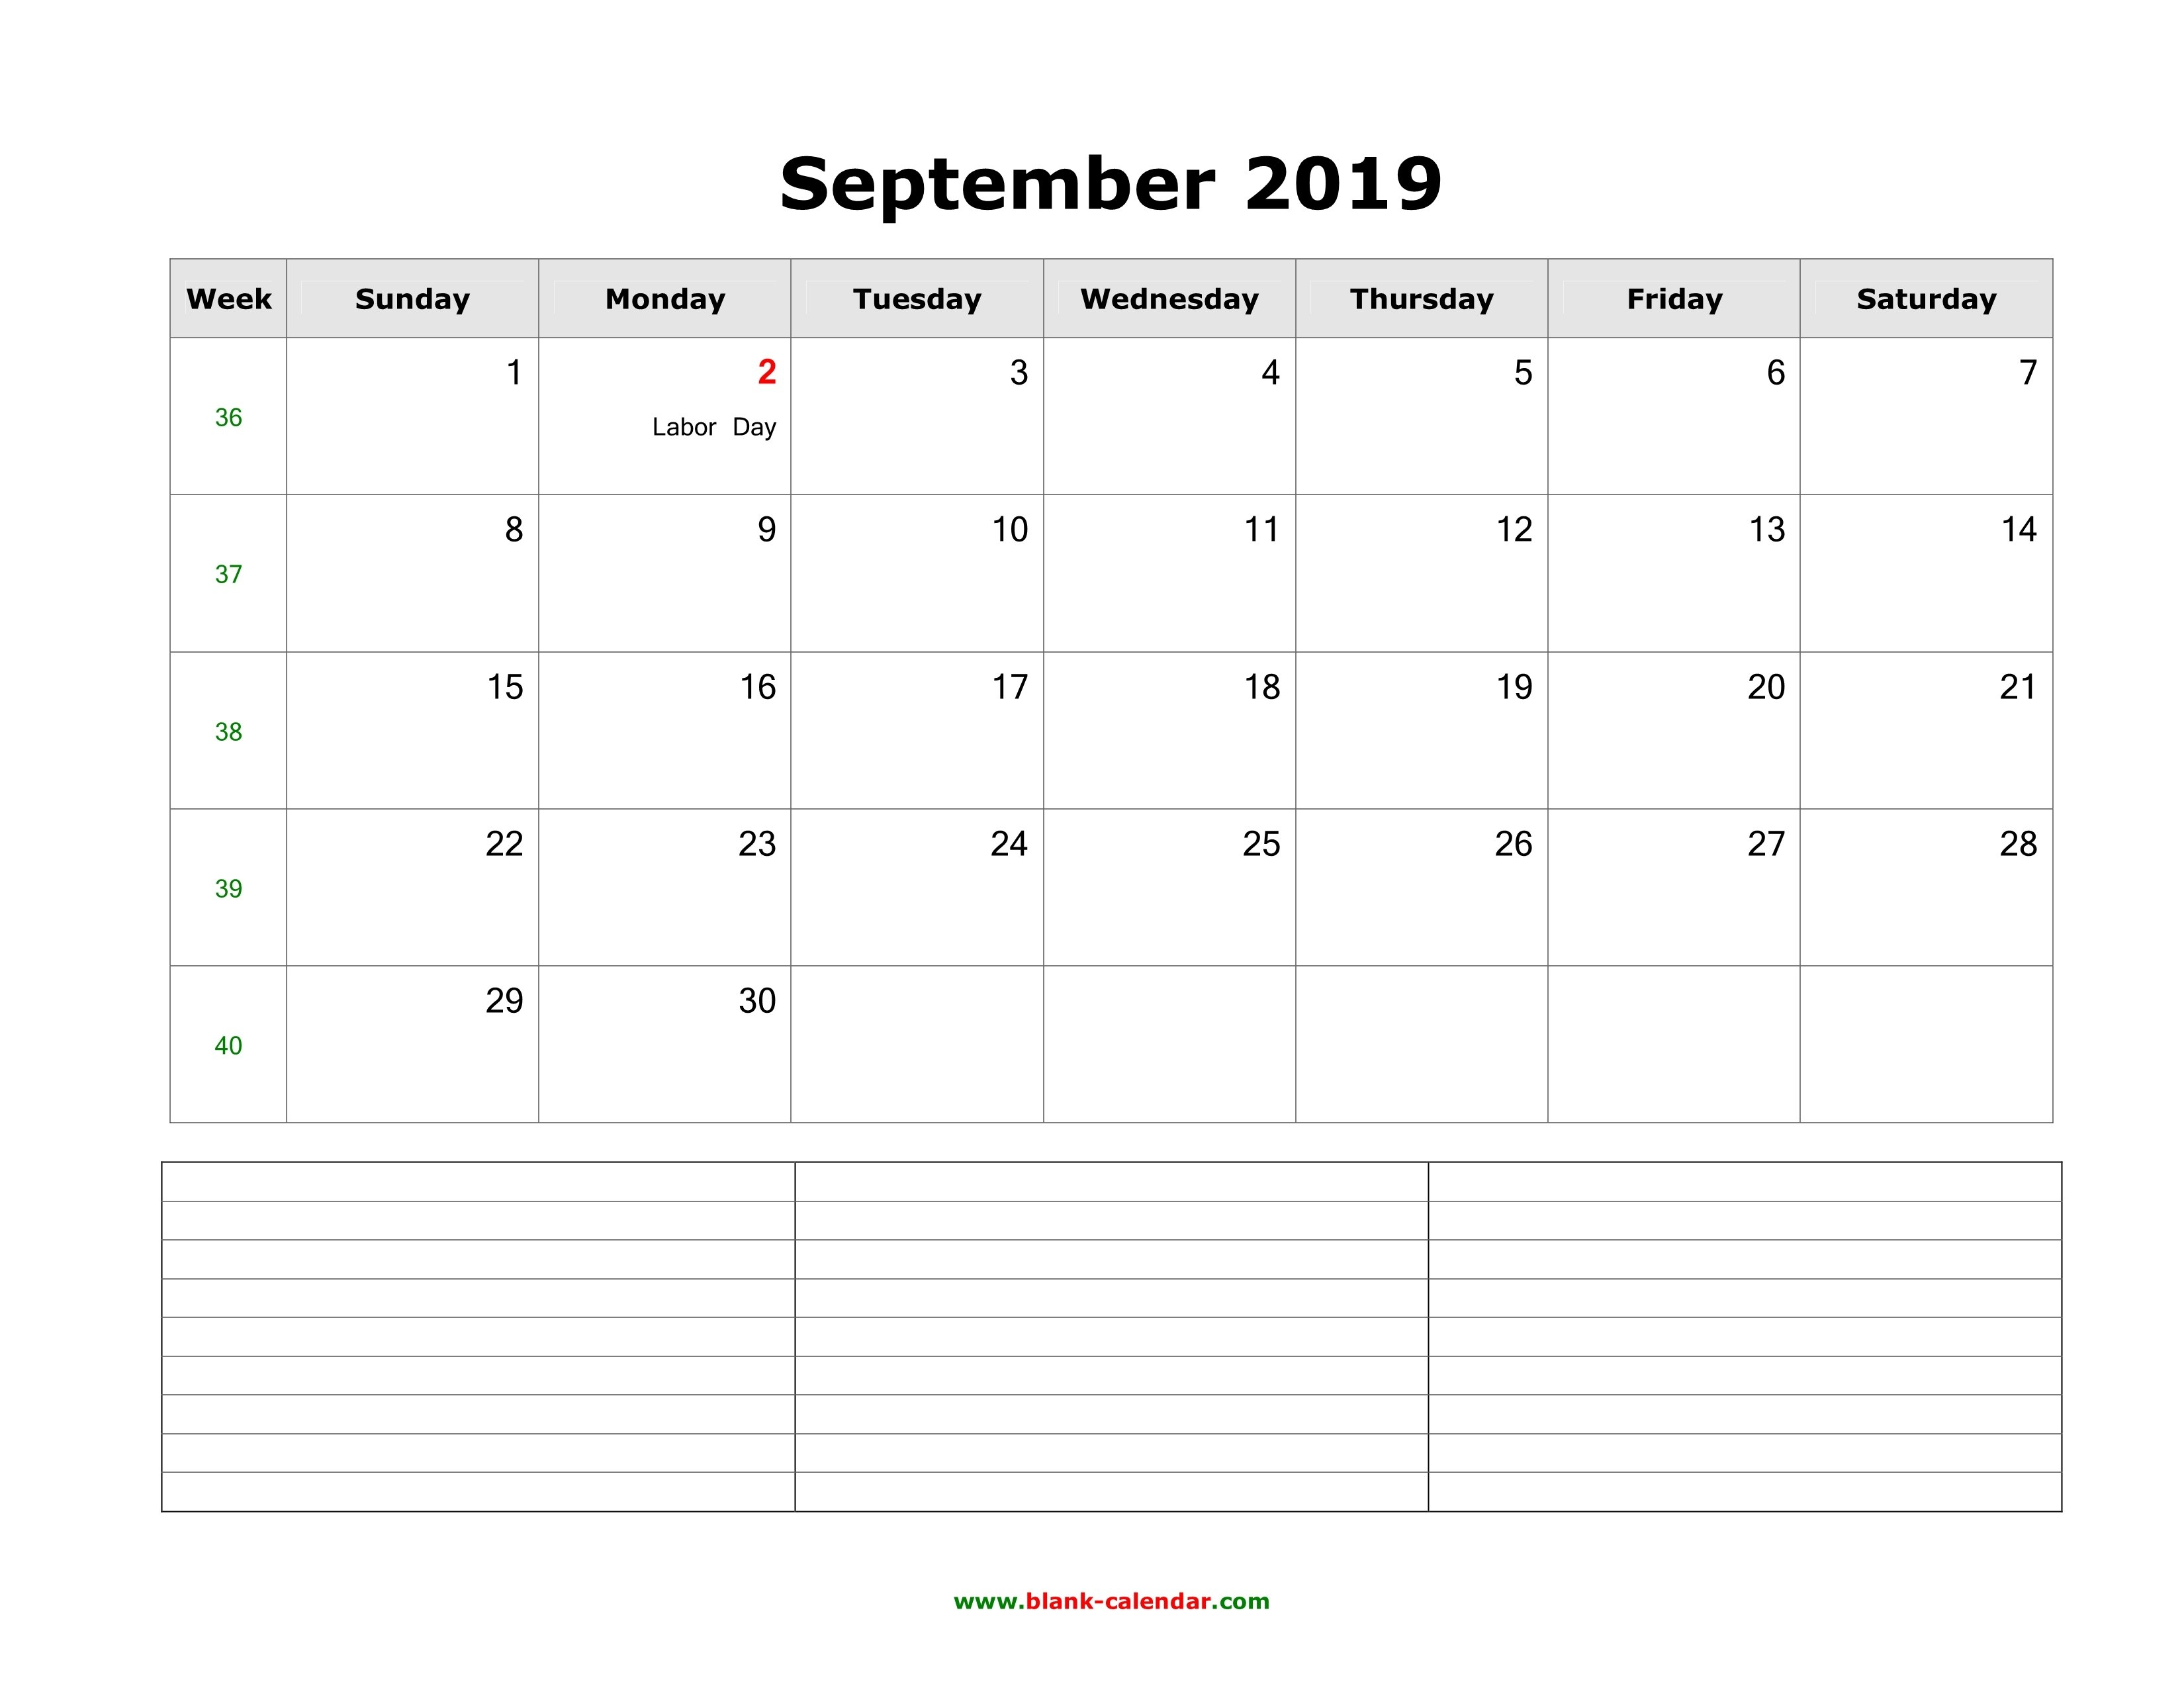 Download September 2019 Blank Calendar With Space For Notes (Horizontal) Calendar 2019 Labor Day